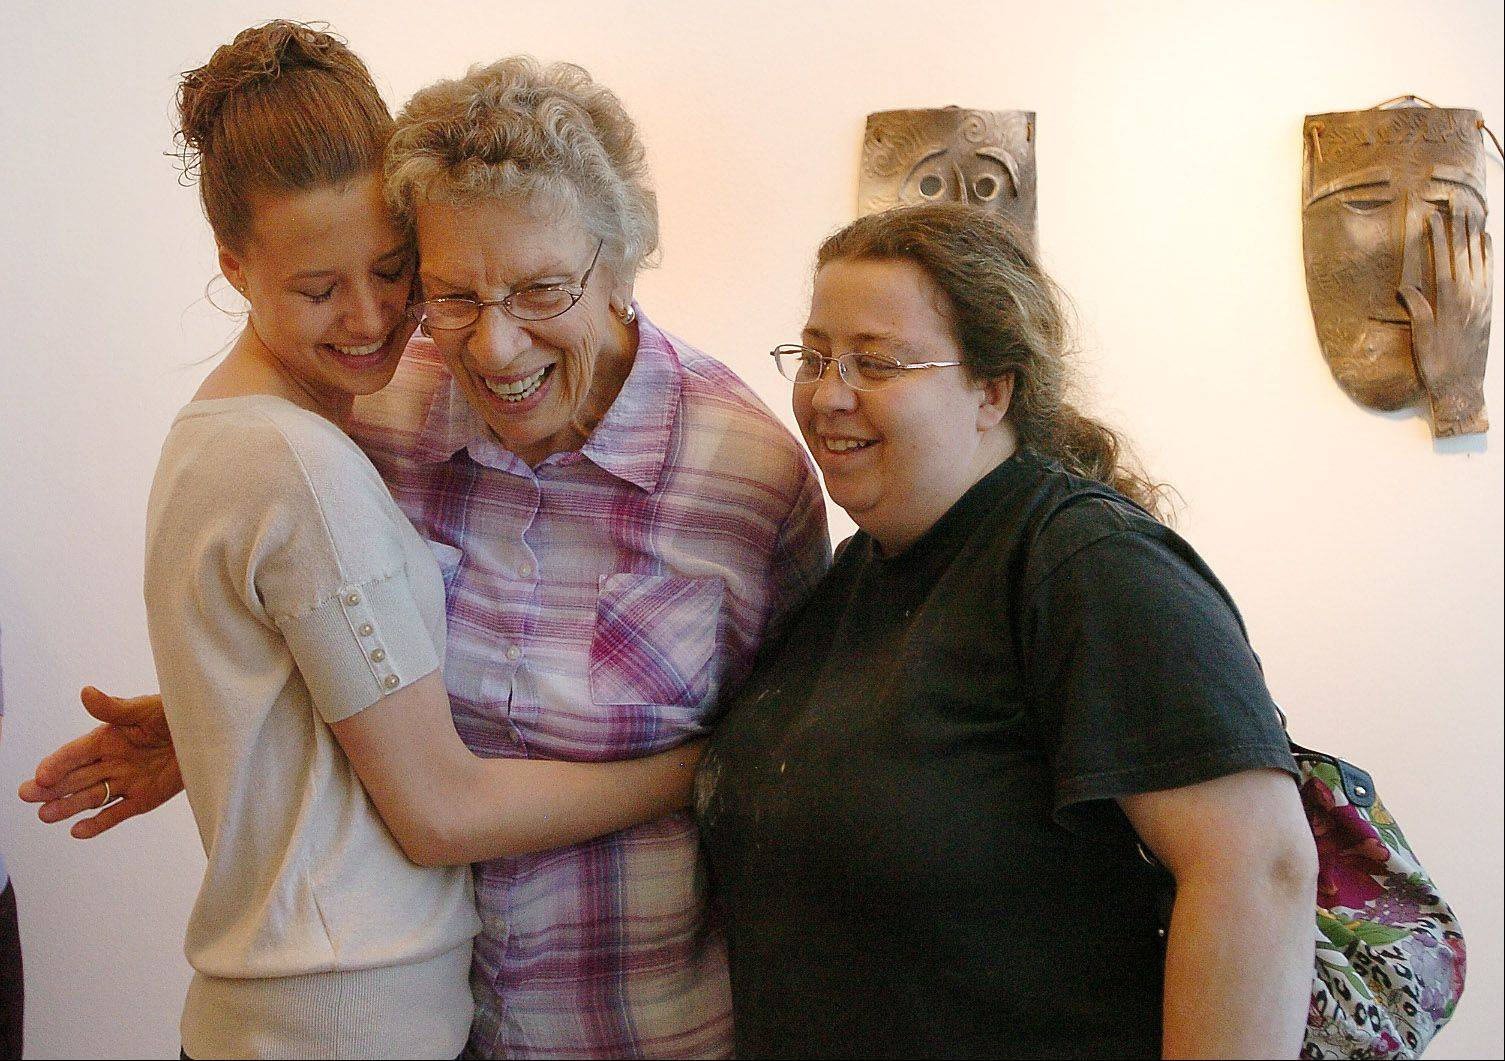 Mary Applegate gets a hug from former art student colleagues, Christine Rueger, left, and Jill Popp, at Mary's sculpture exhibition reception. The 89-year-old Palatine artist's work is on display at the college through July 18.